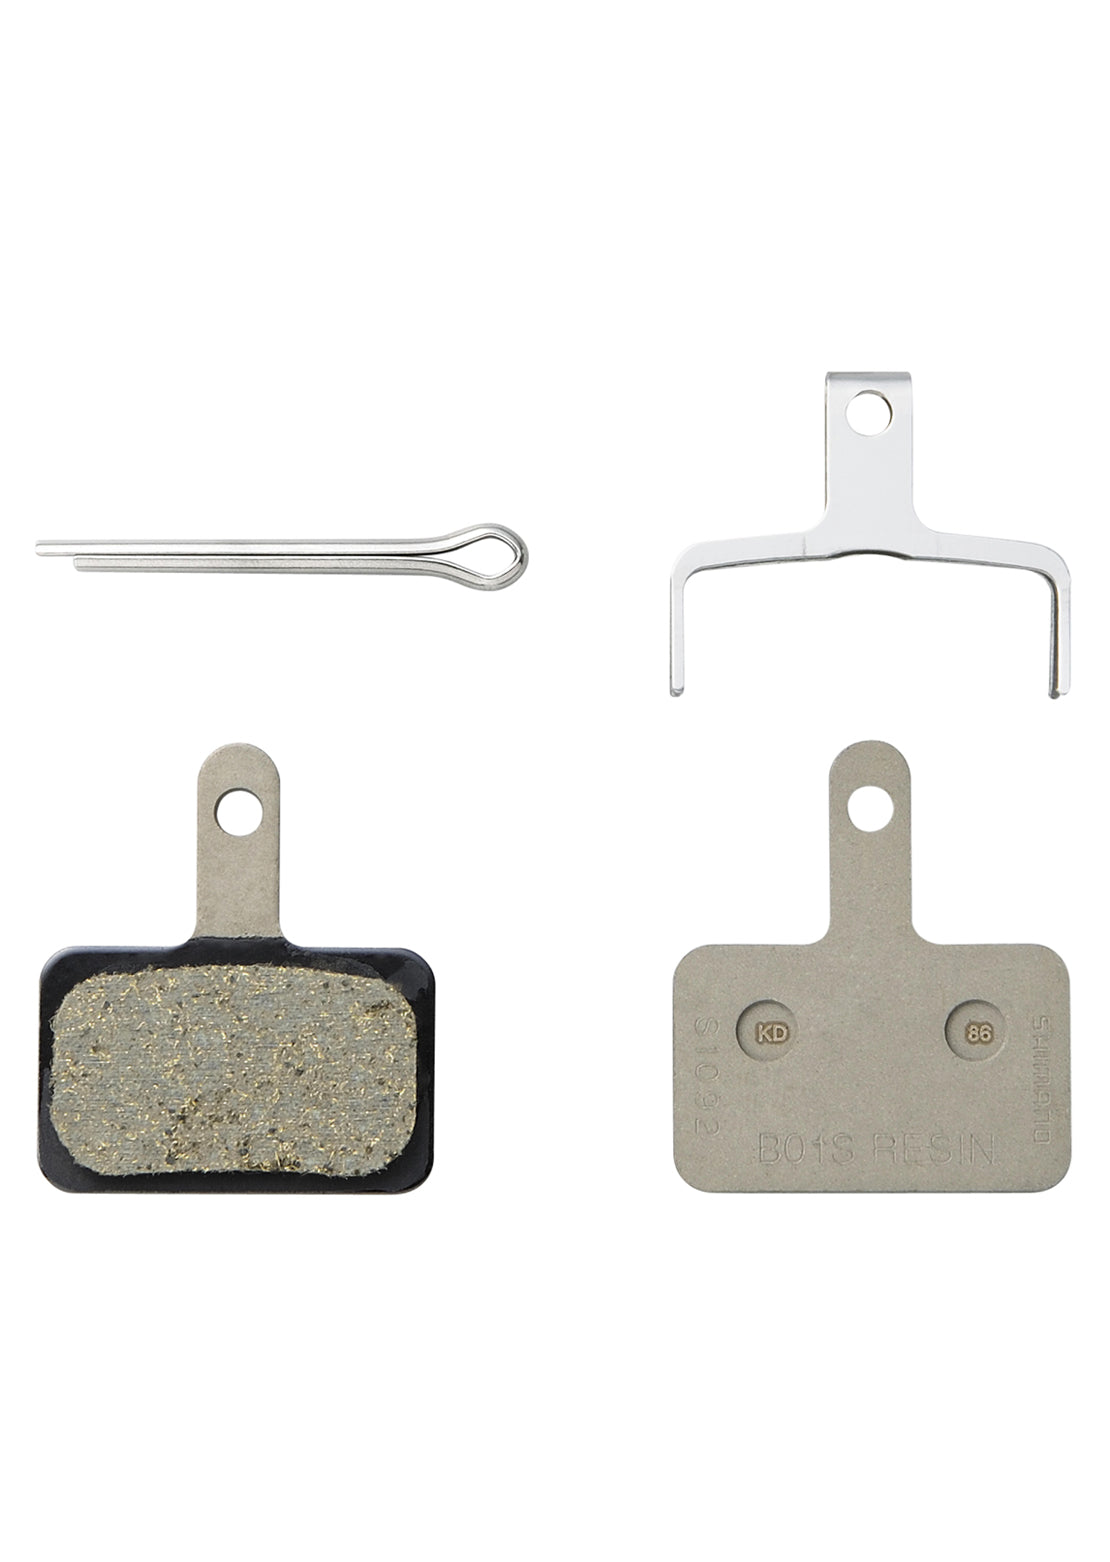 Shimano B01S Resin Brake Pads No Color